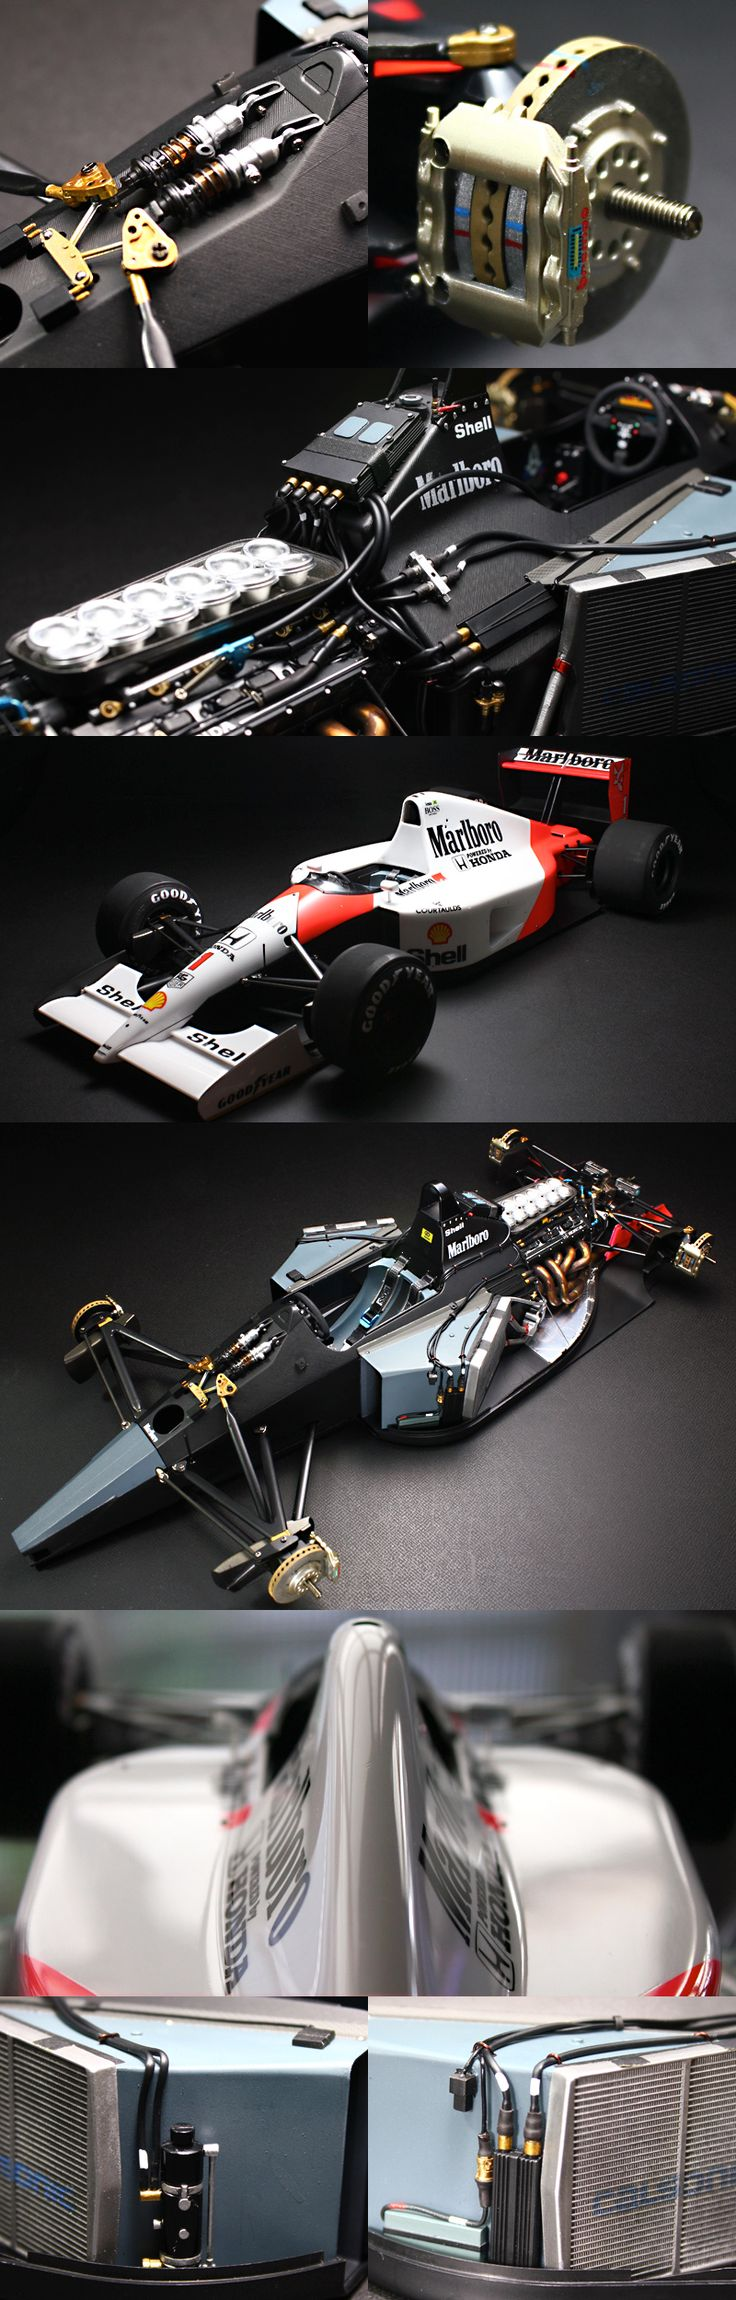 1/12 scale HONDA MP4/6 - delicious